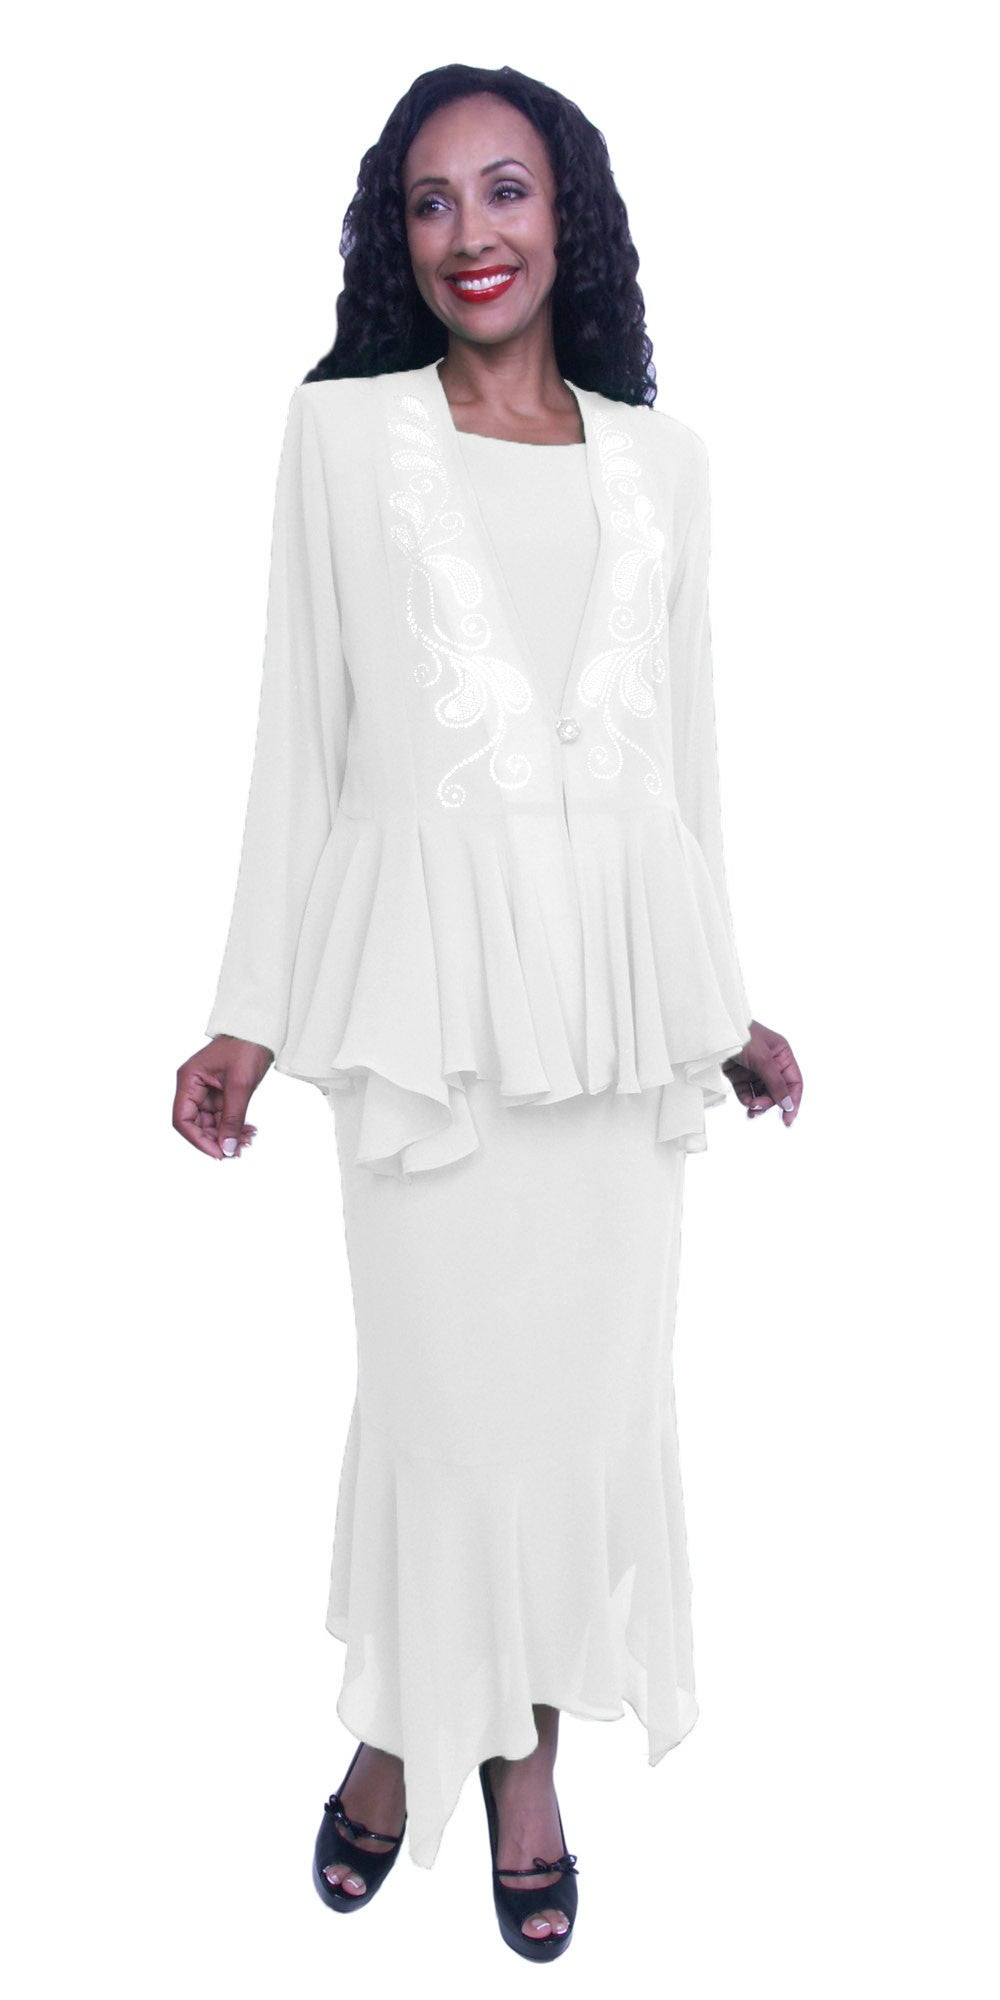 Tea-Length White Peplum Embellished Jacket Plus Size Dress